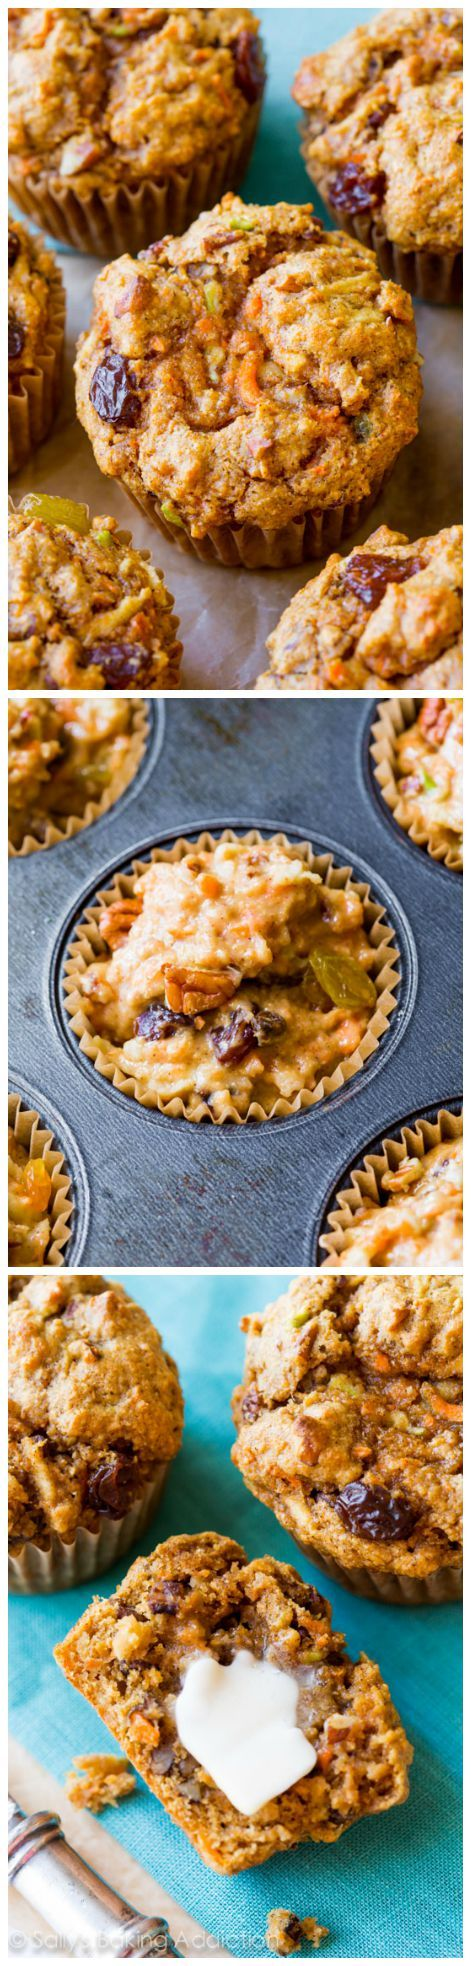 Hands down, one of my favorite muffin recipes! Freezer friendly, wholesome, healthy, and EASY morning glory muffins!